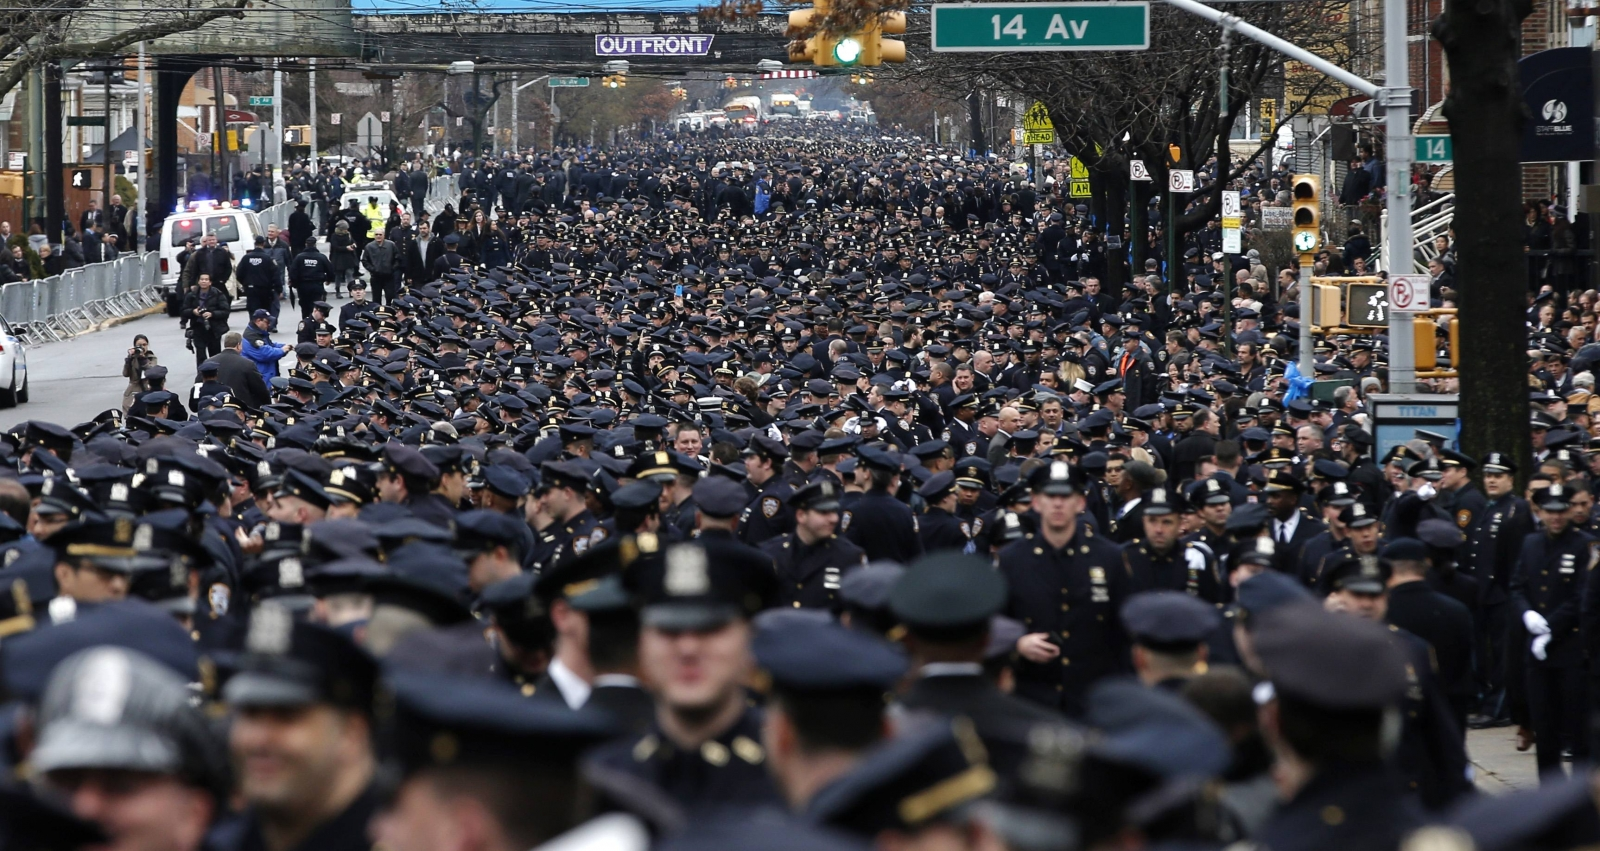 Mayor says New Yorkers are 'heartbroken' during eulogy for slain police officer